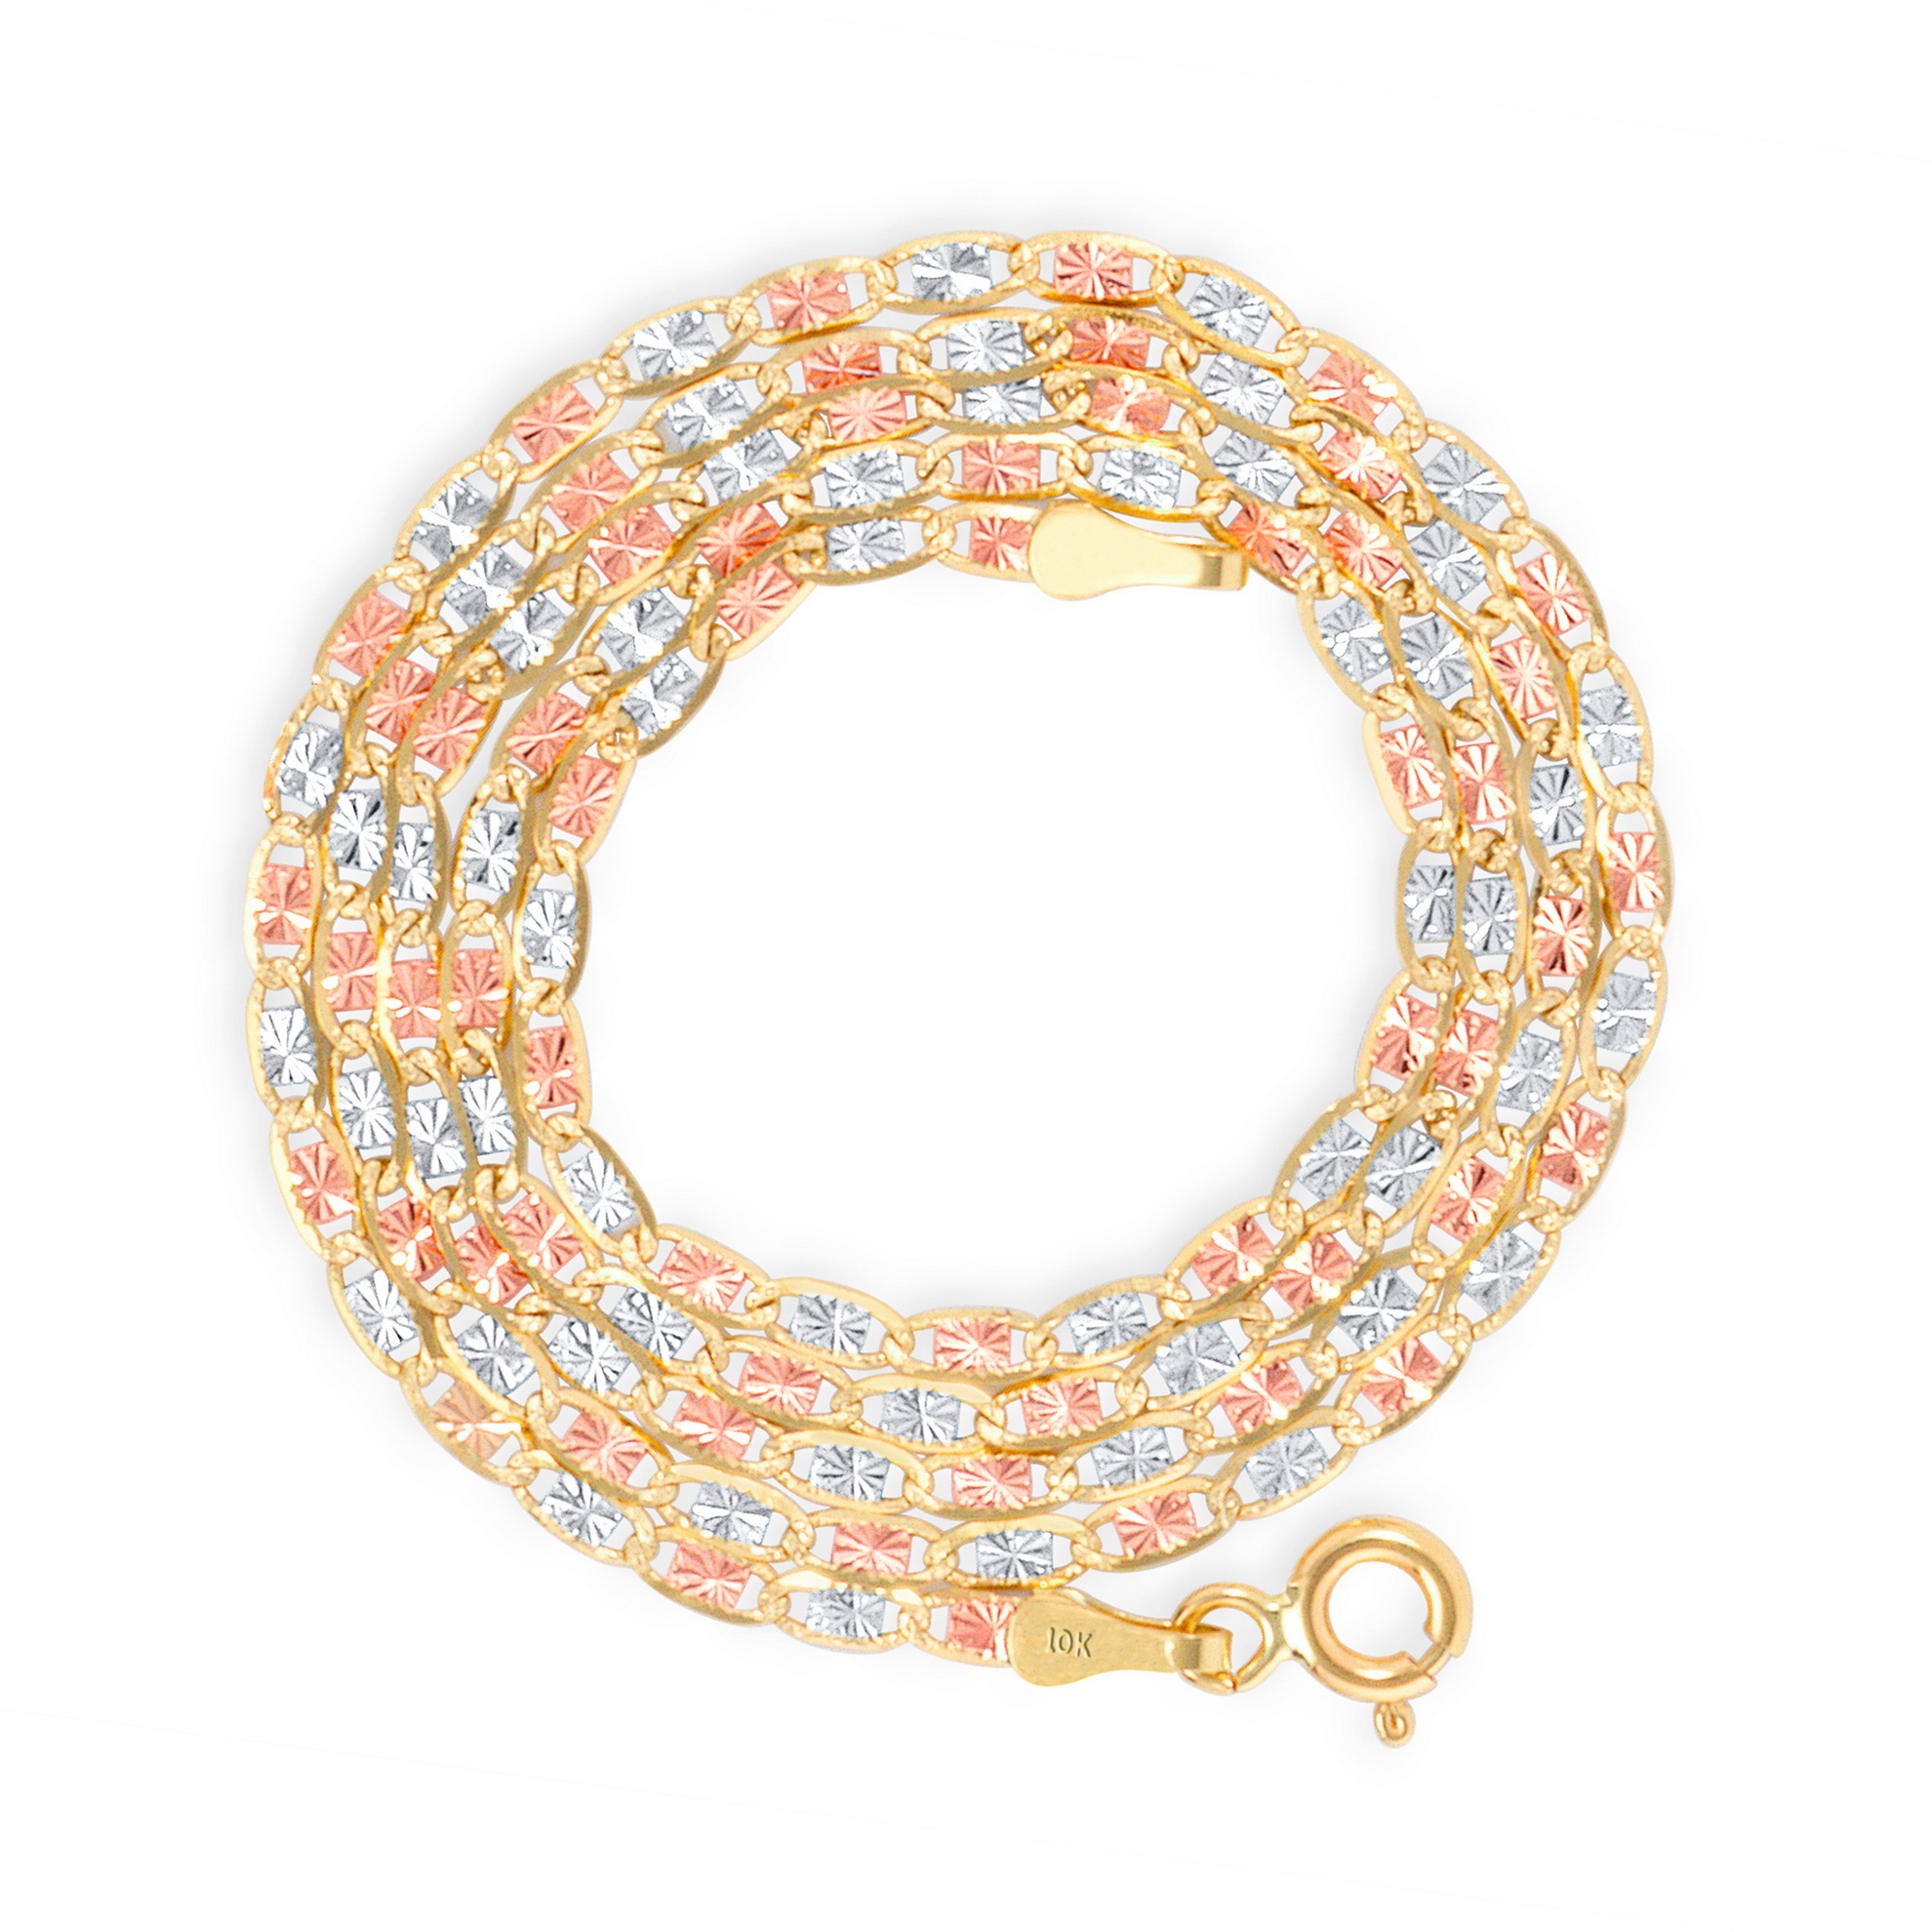 10K-Solid-Tri-Yellow-Rose-White-Gold-Thin-1-5mm-Valentino-Chain-Necklace-16-034-24-034 thumbnail 17